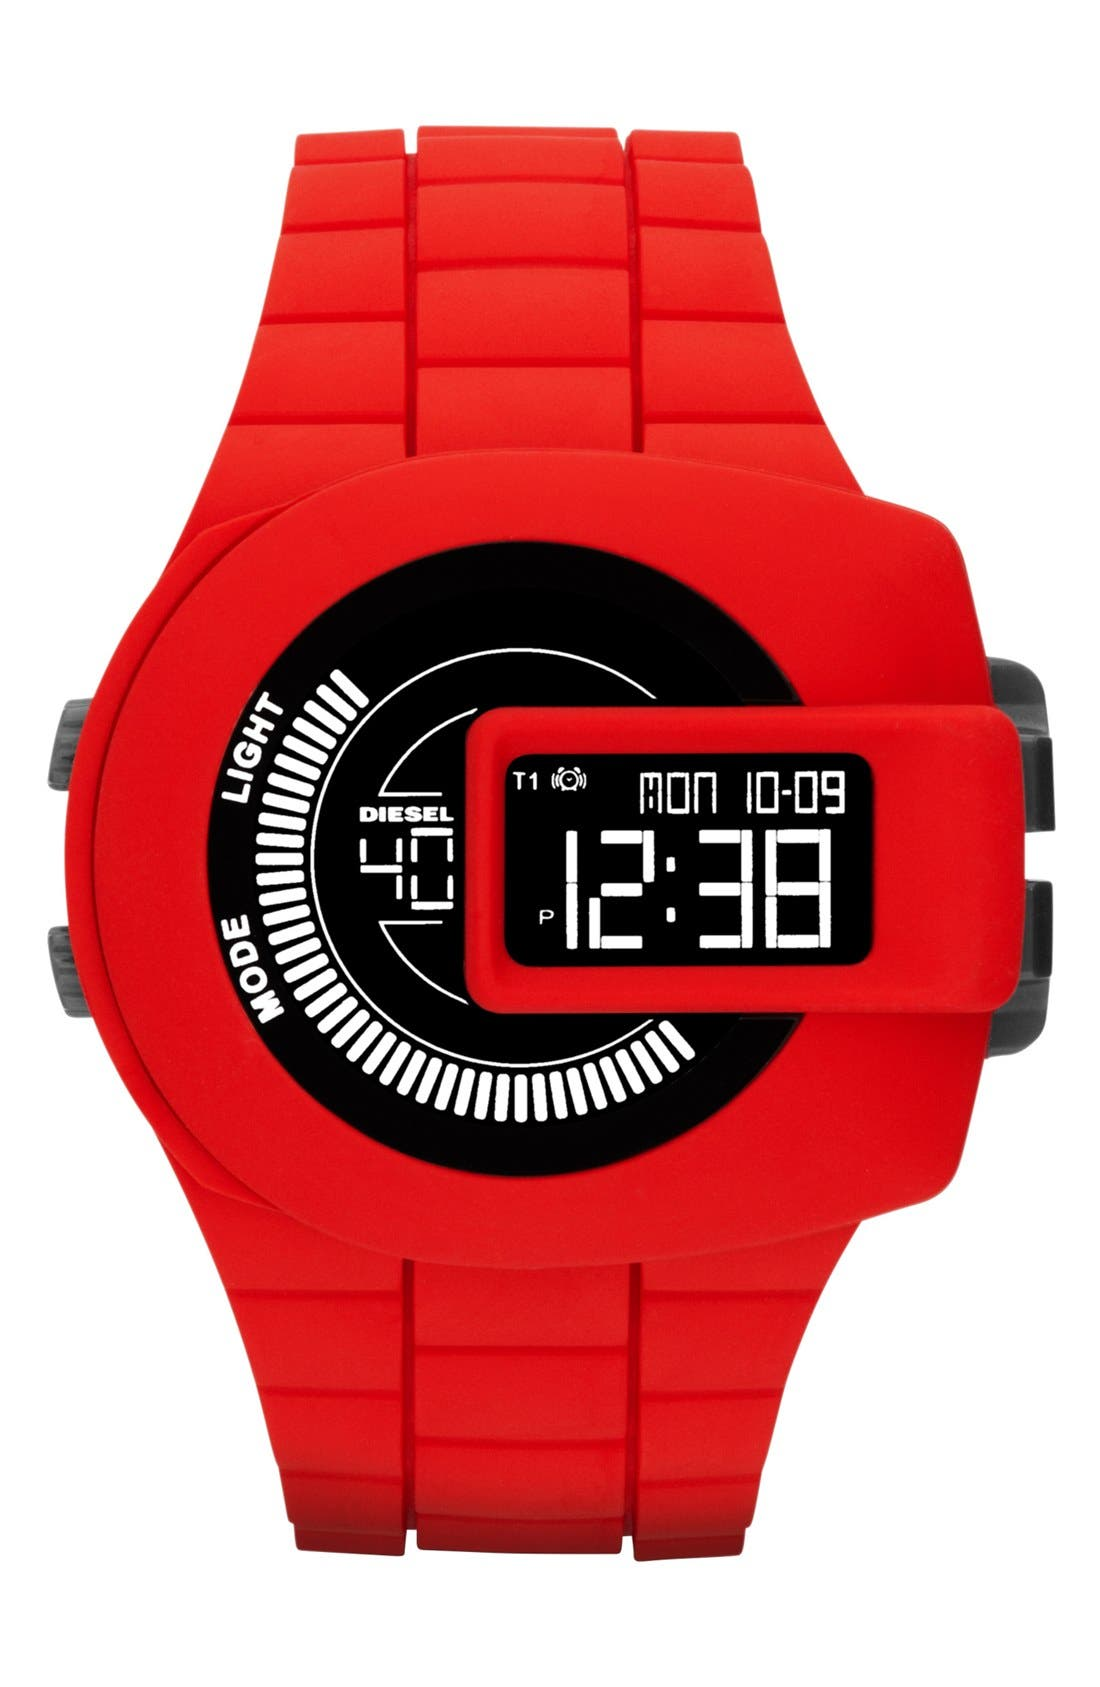 Alternate Image 1 Selected - DIESEL® 'Viewfinder' Digital Watch, 43mm x 52mm